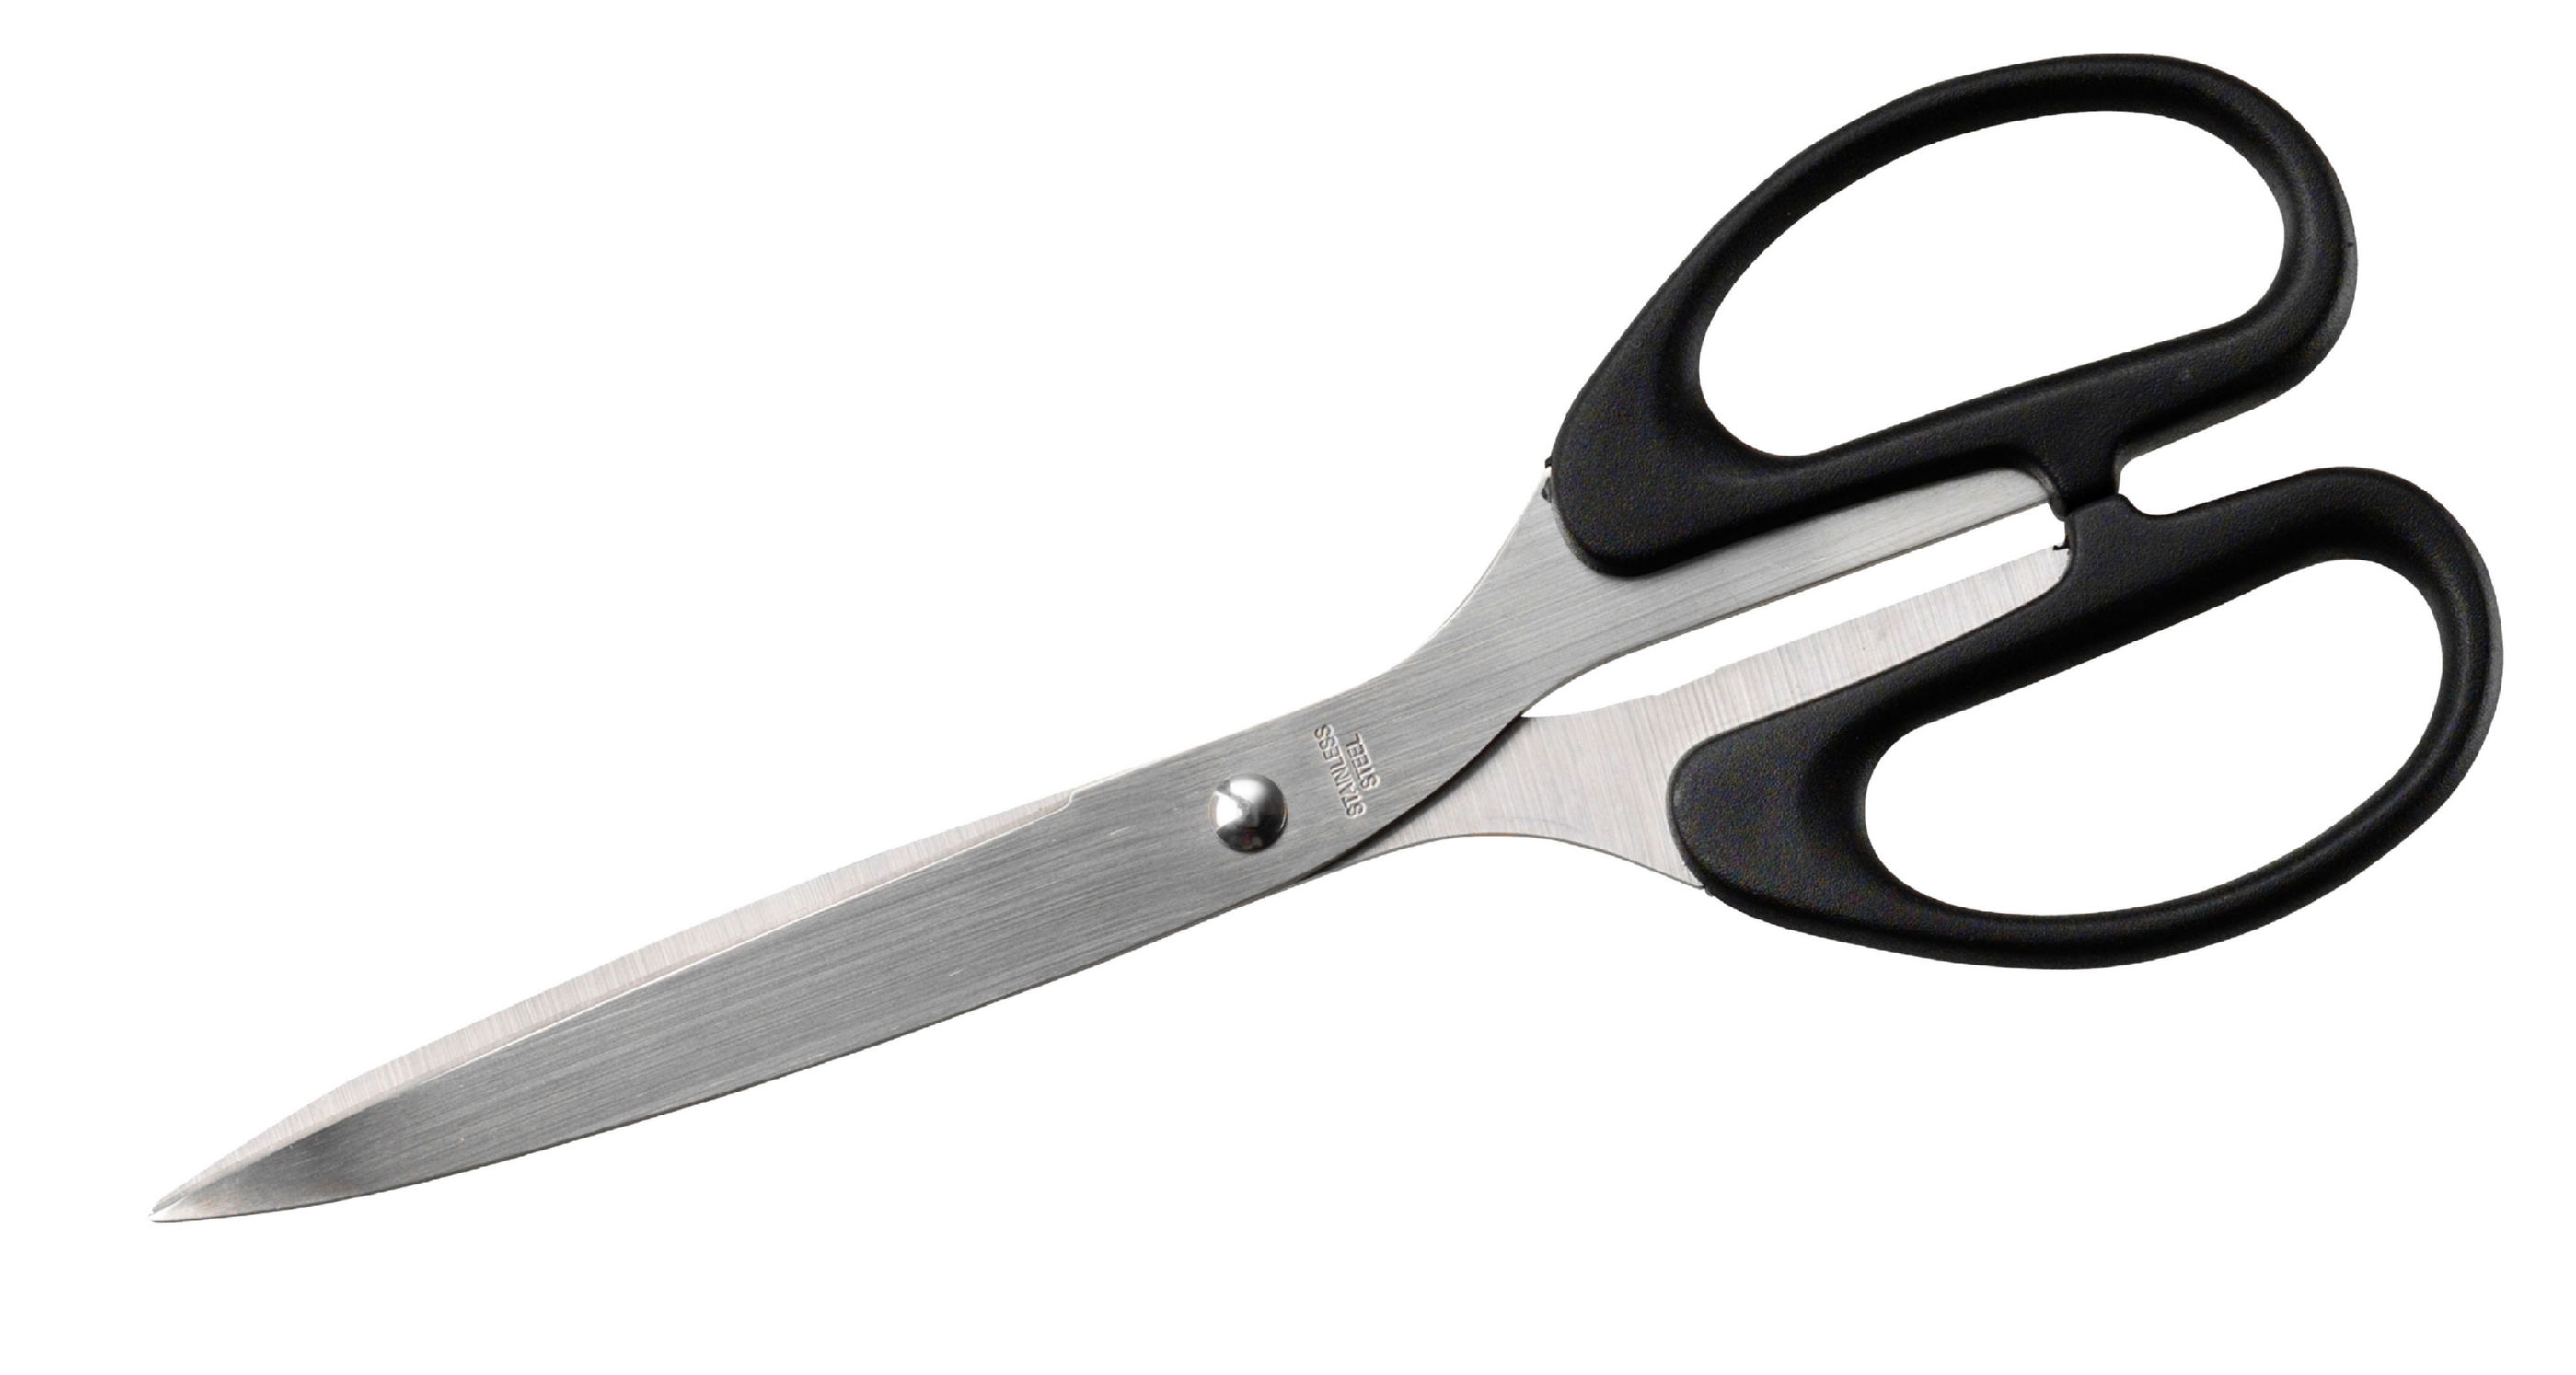 Scissors ValueX Scissors Black Handle 8 inch /203mm